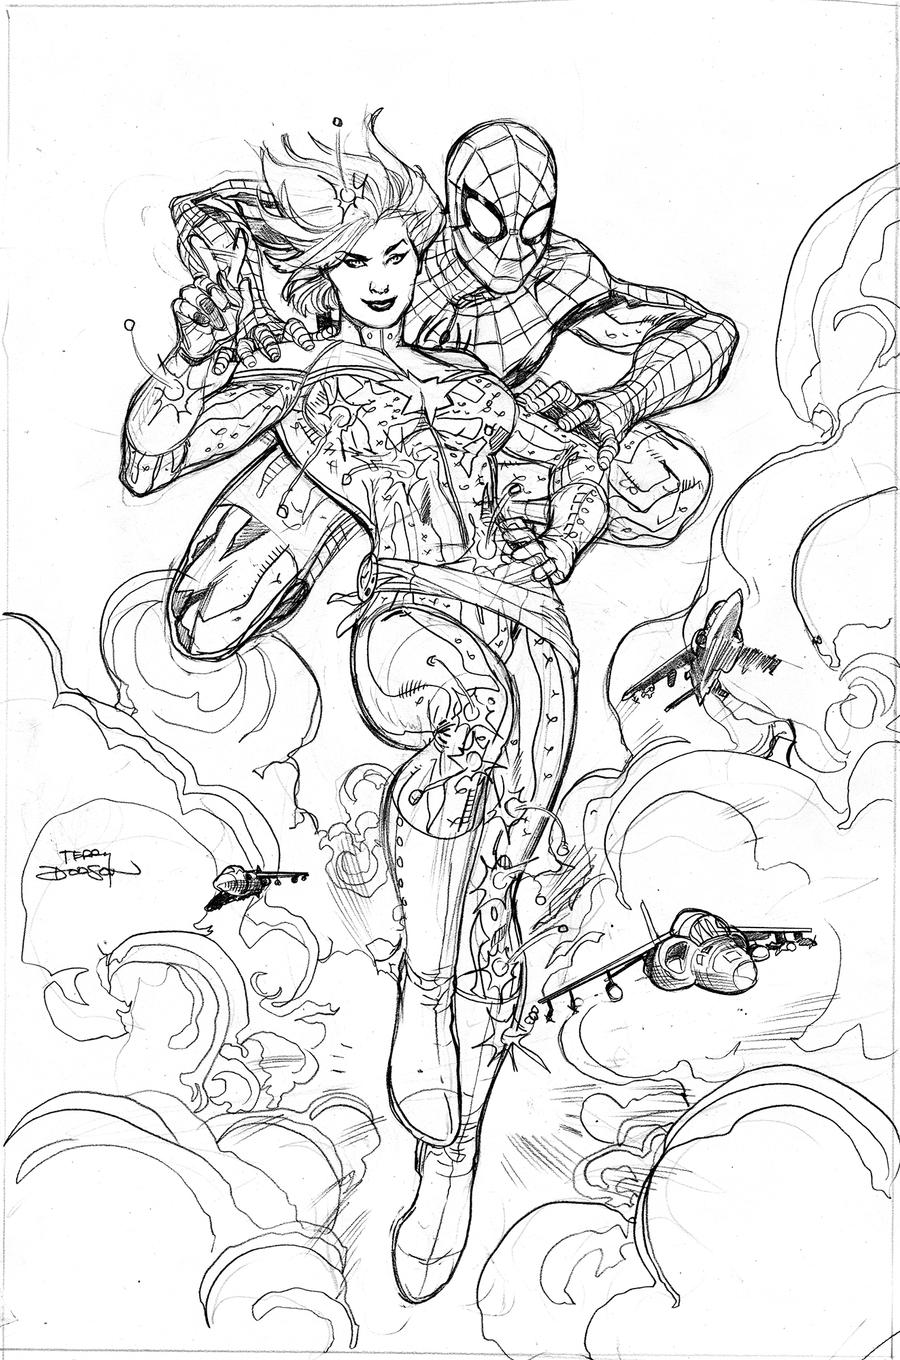 Avenging Spider-Man #9 Cover Pencils by TerryDodson